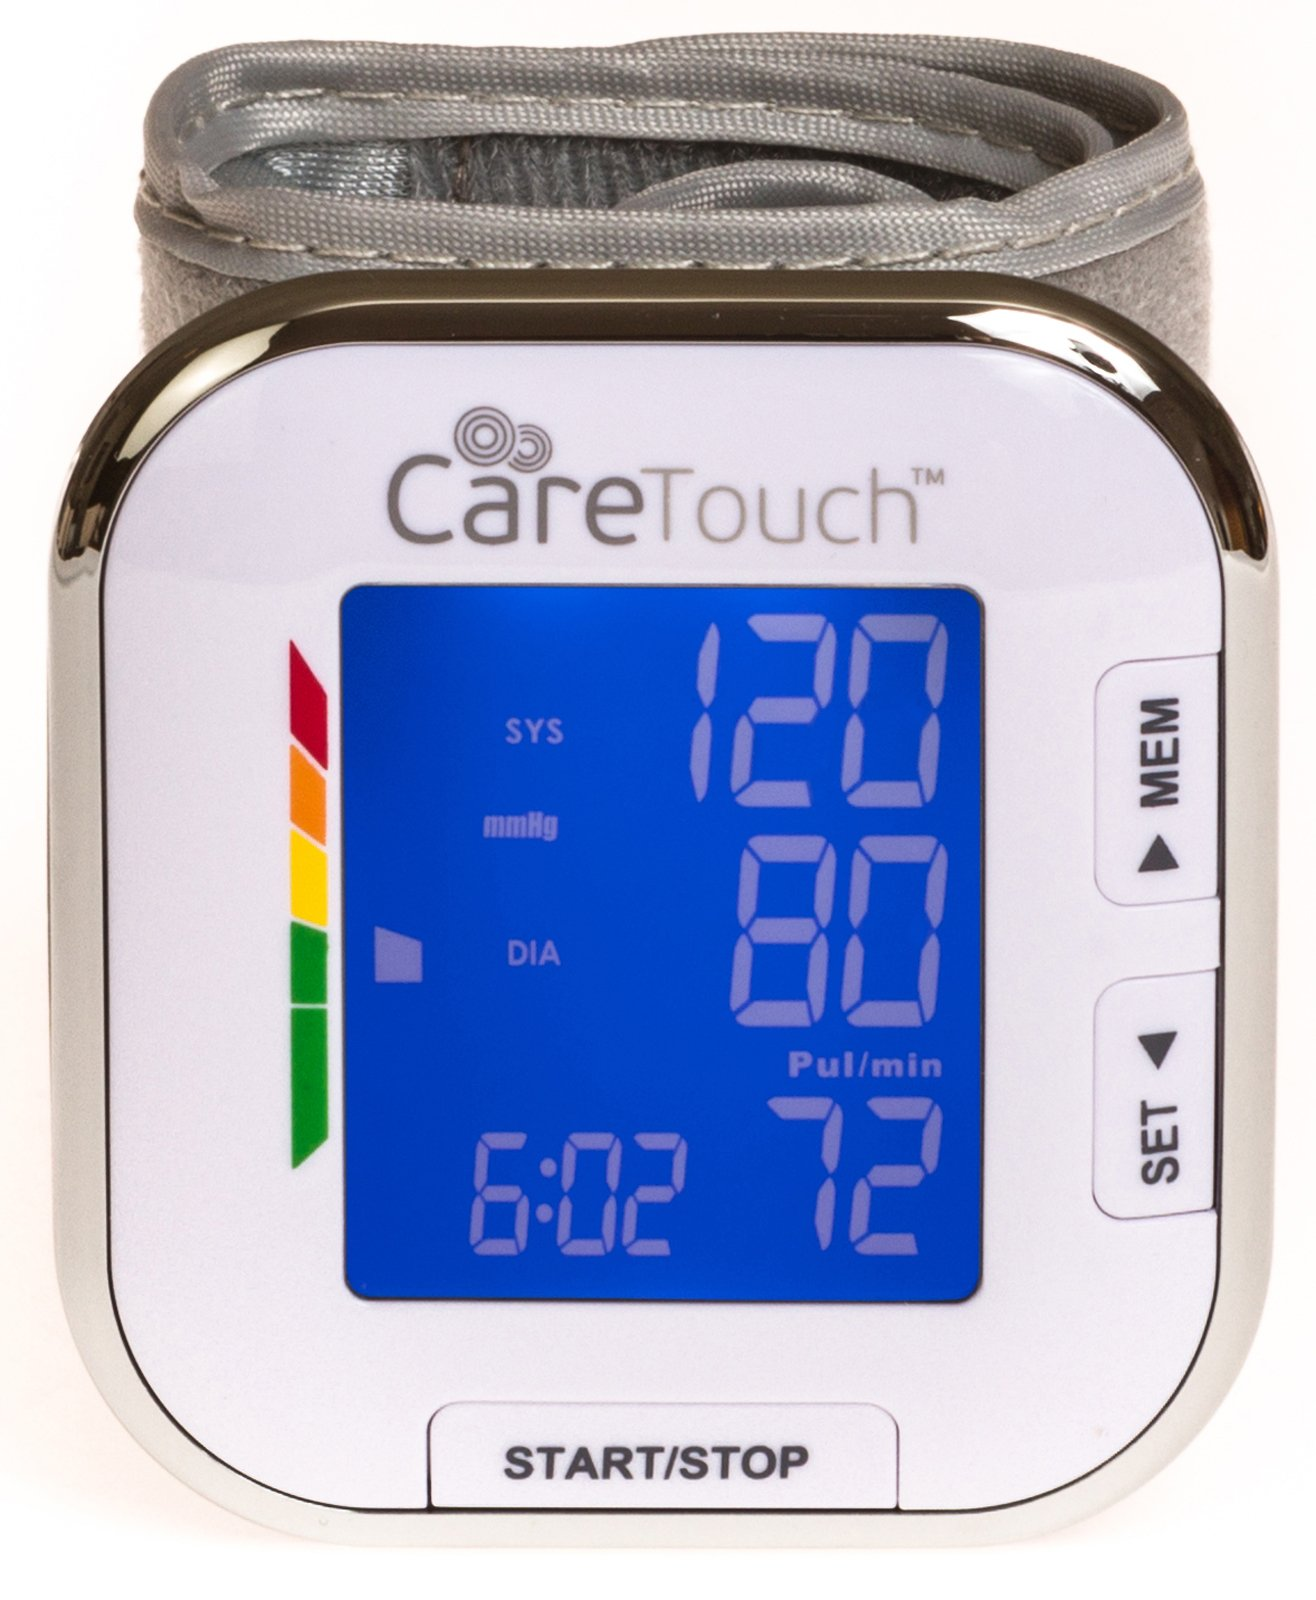 Care Touch Fully Automatic Wrist Blood Pressure Cuff Monitor - Platinum Series, 5.5'' - 8.5'' Cuff Size- Batteries Included by Care Touch